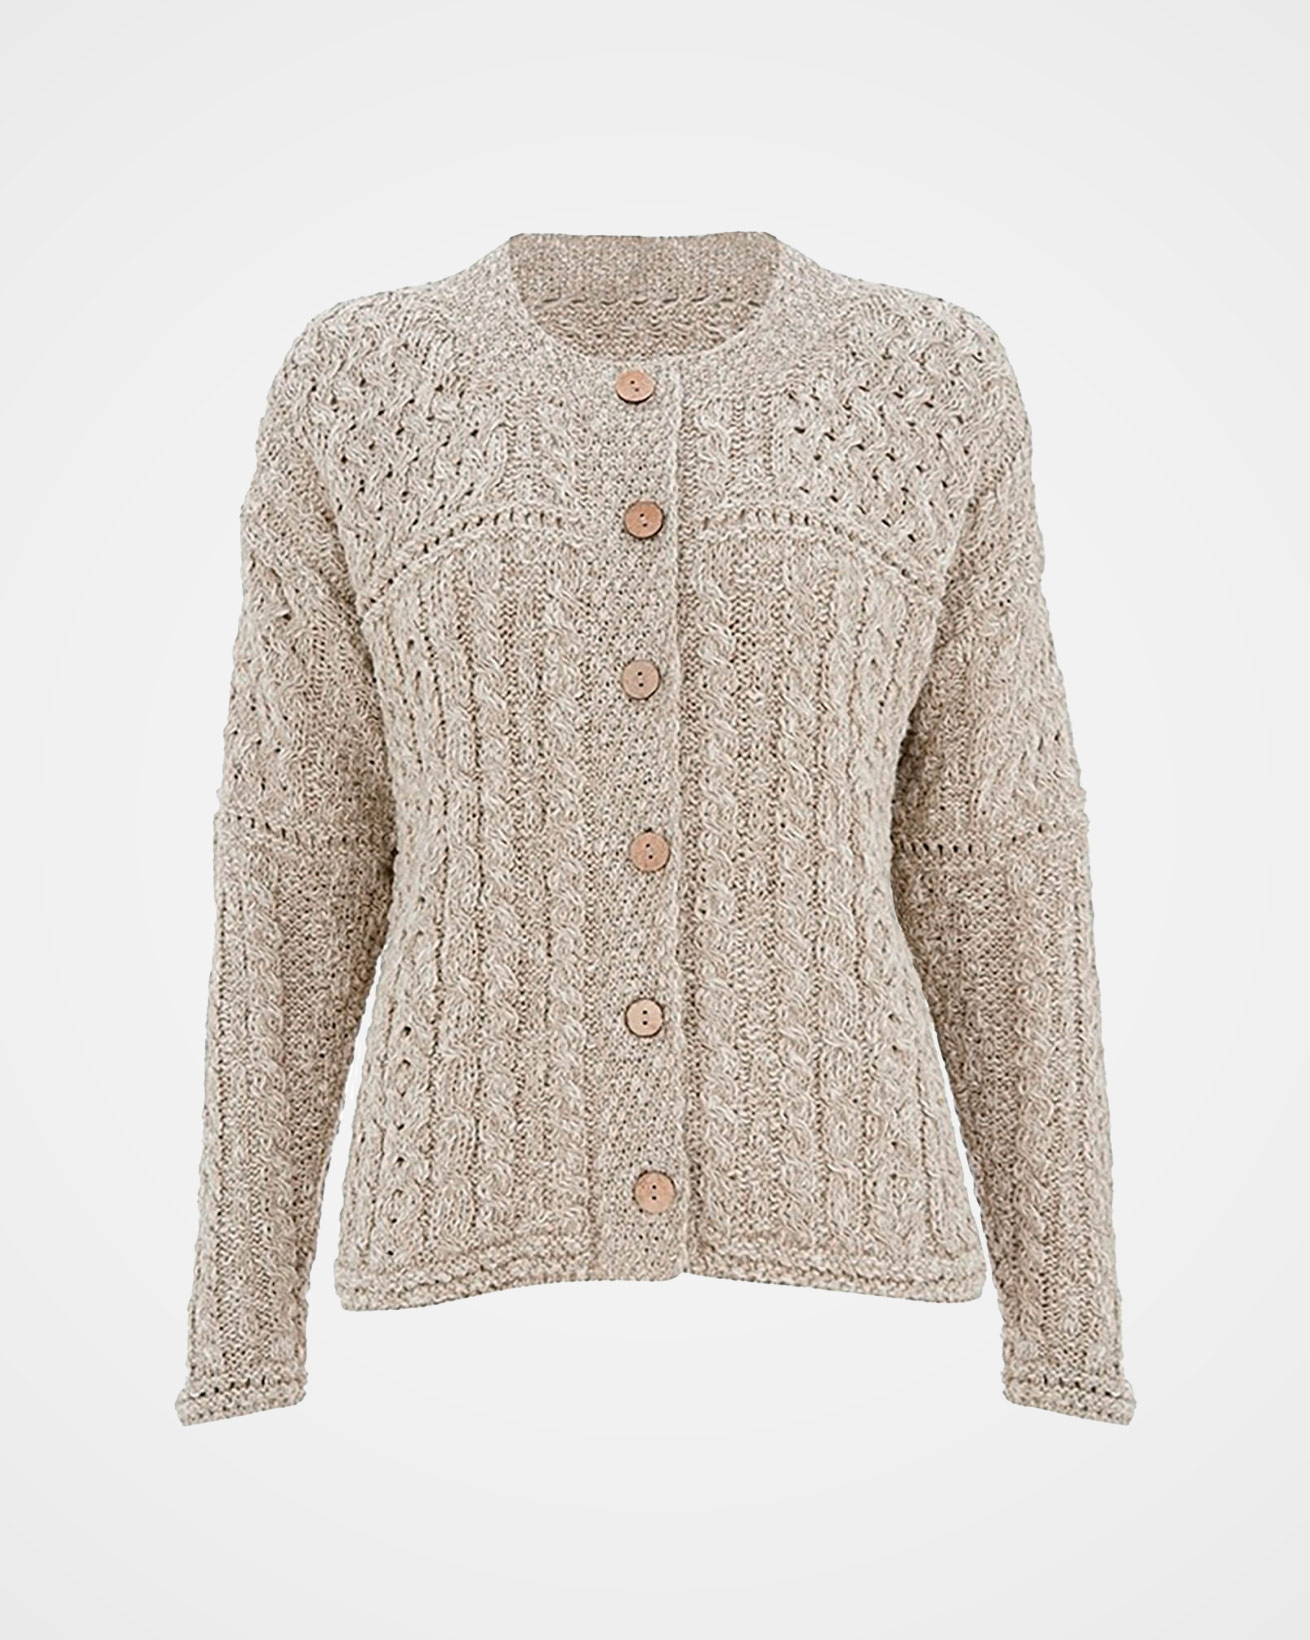 6975_knitted-linen-cardi_natural_front.jpg